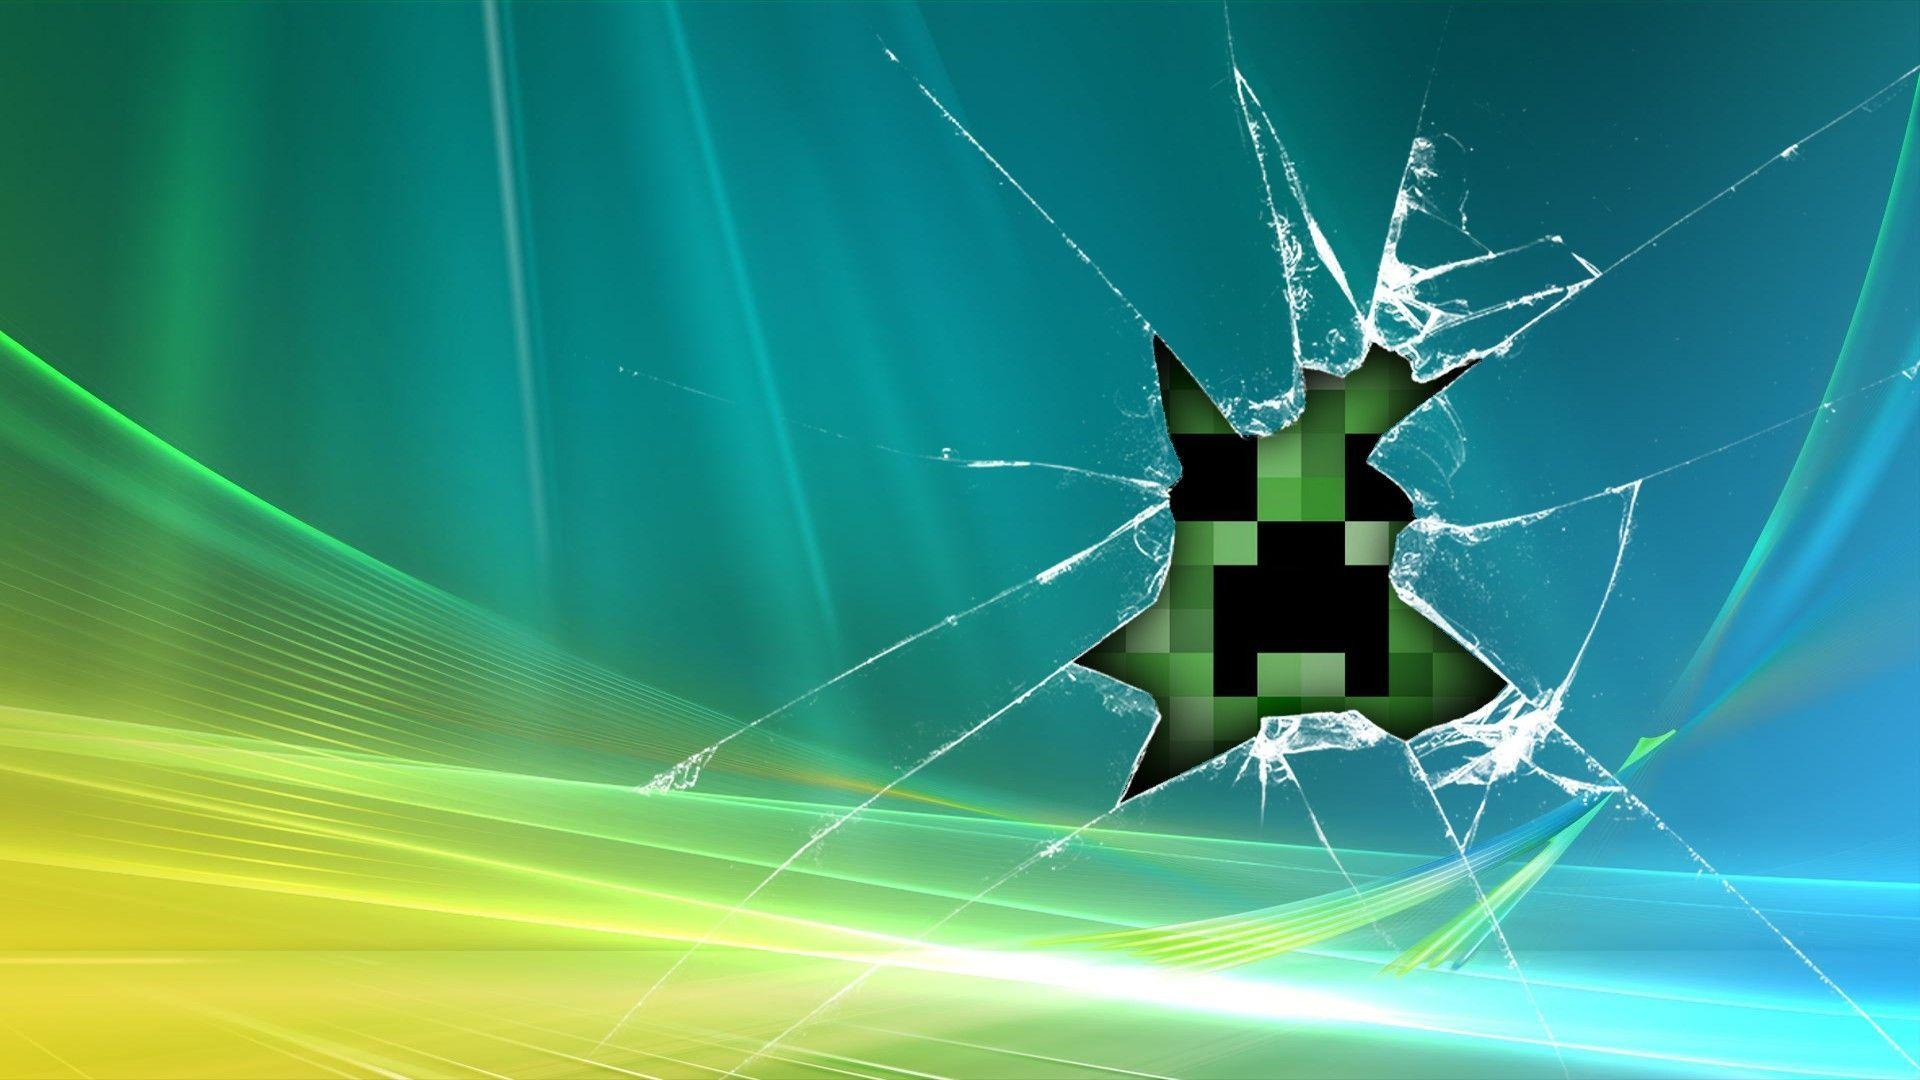 Wallpapers For > Hd Wallpapers For Windows 7 Minecraft